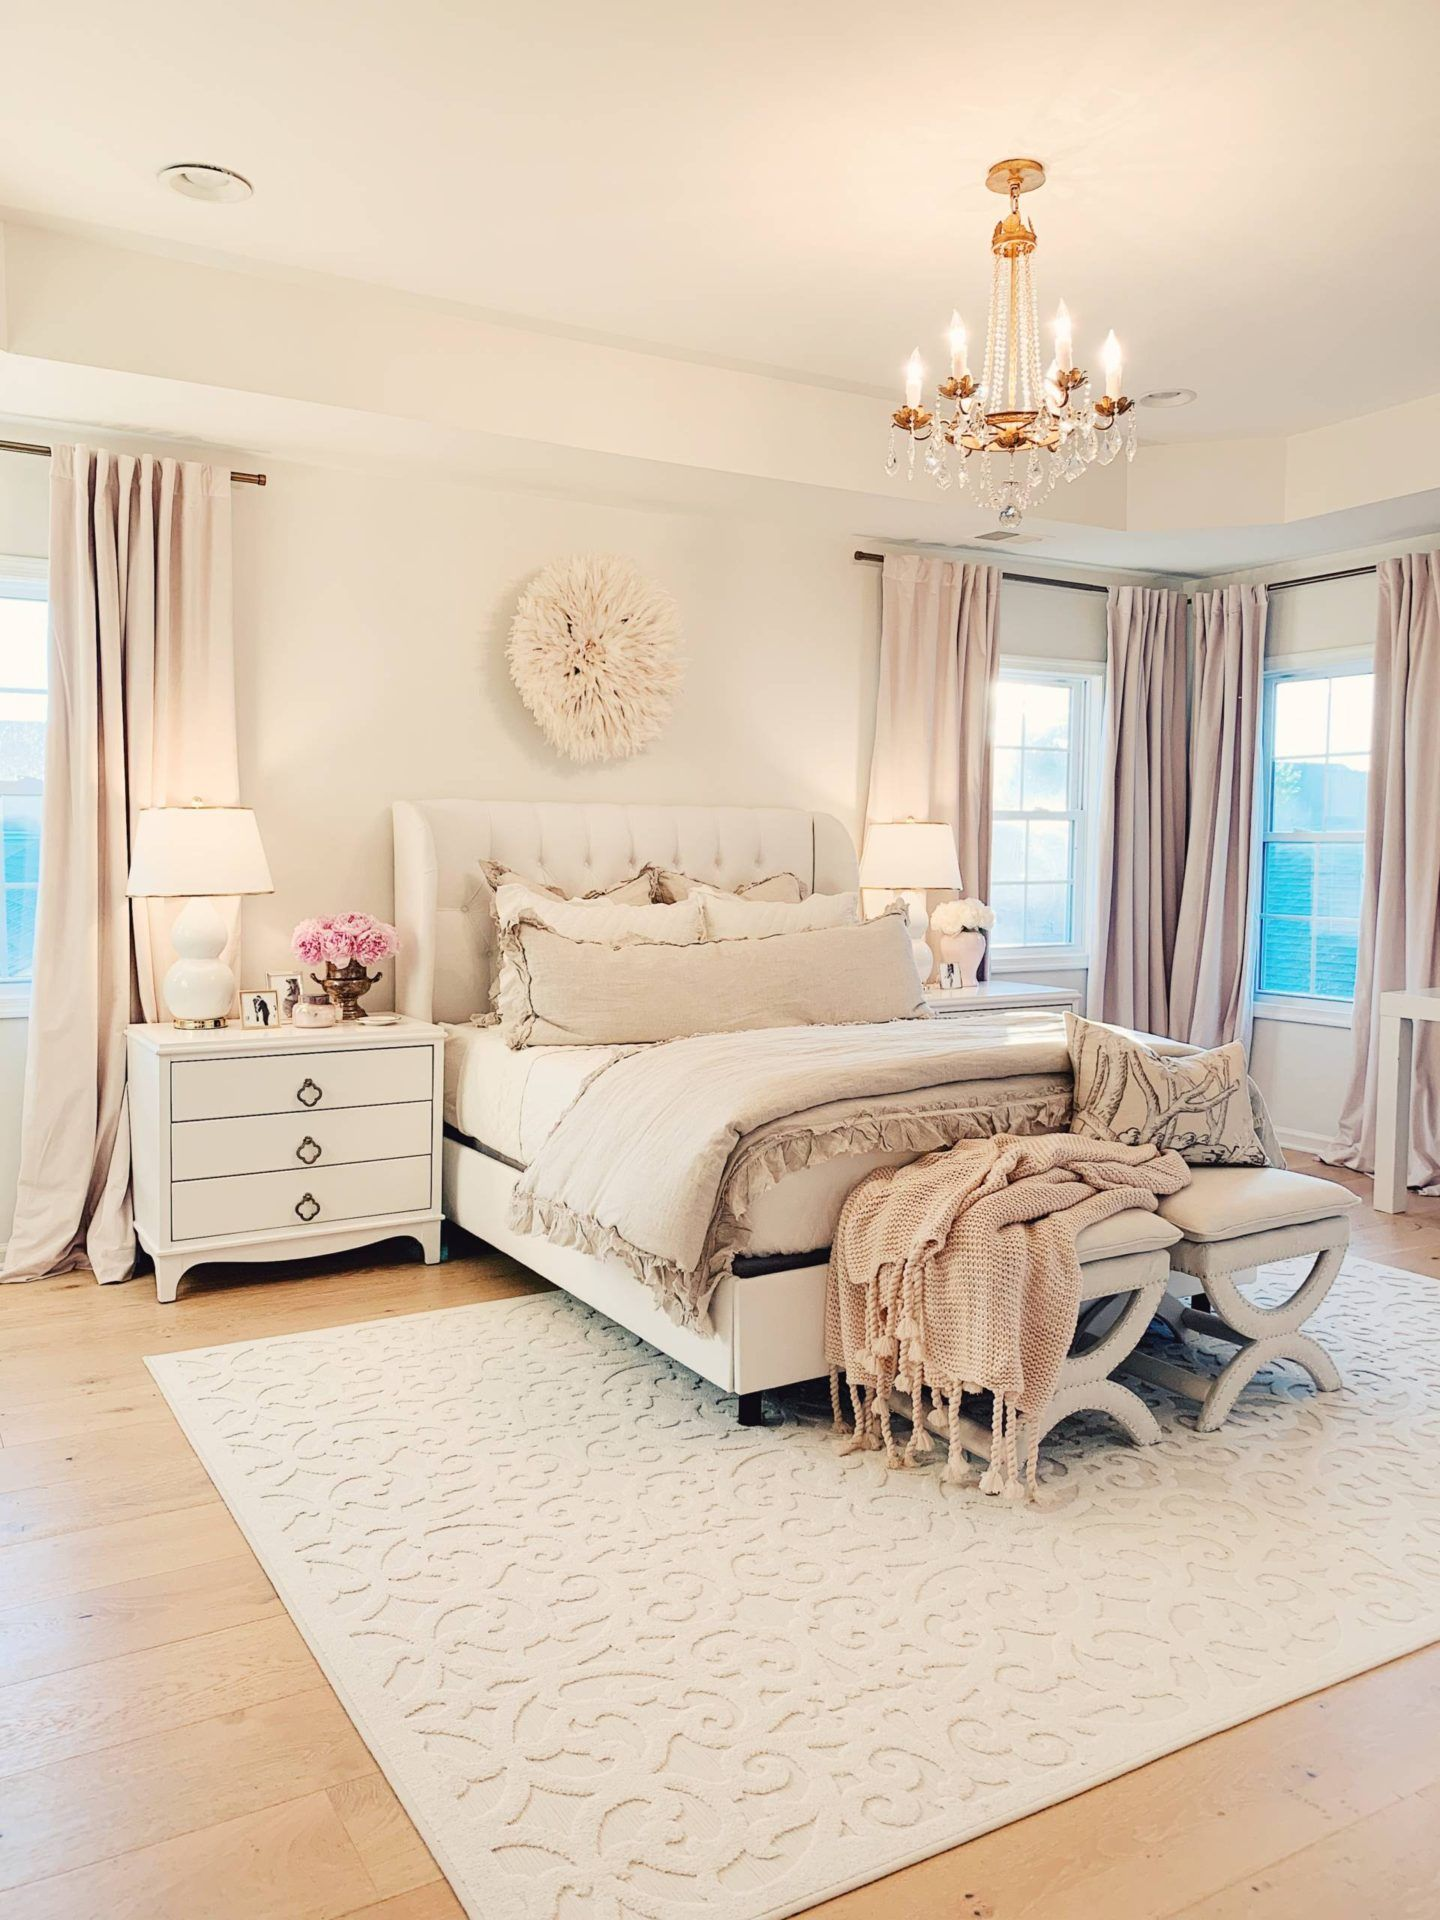 Master Bedroom Decor: a Cozy & Romantic Master Bedroom - The Pink Dream